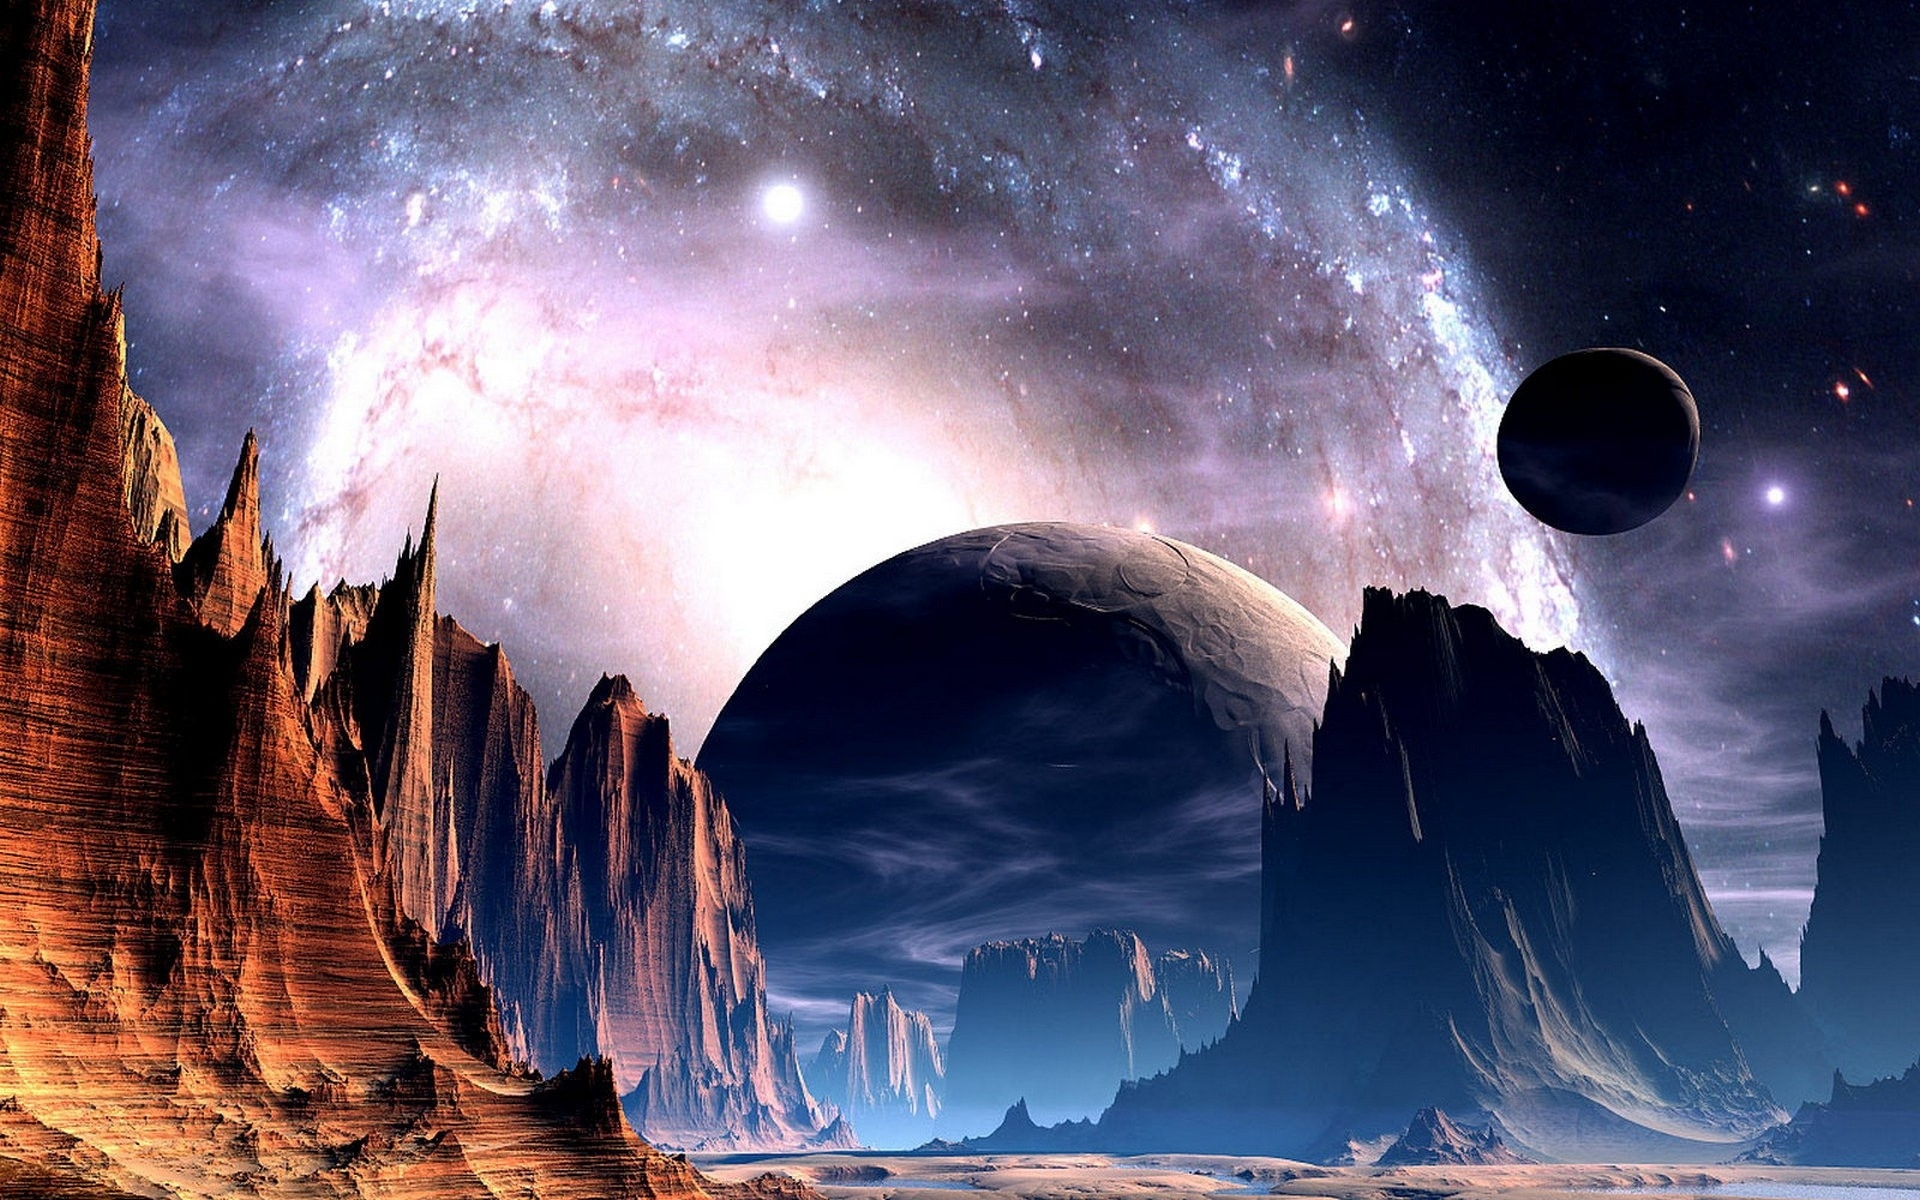 Sci Fi Science Fiction Planets Alien Sky Stars Nebula Galaxy Space Universe Light Bright Nature Landscapes Mountains Cliff Valley Spire Art Artistic